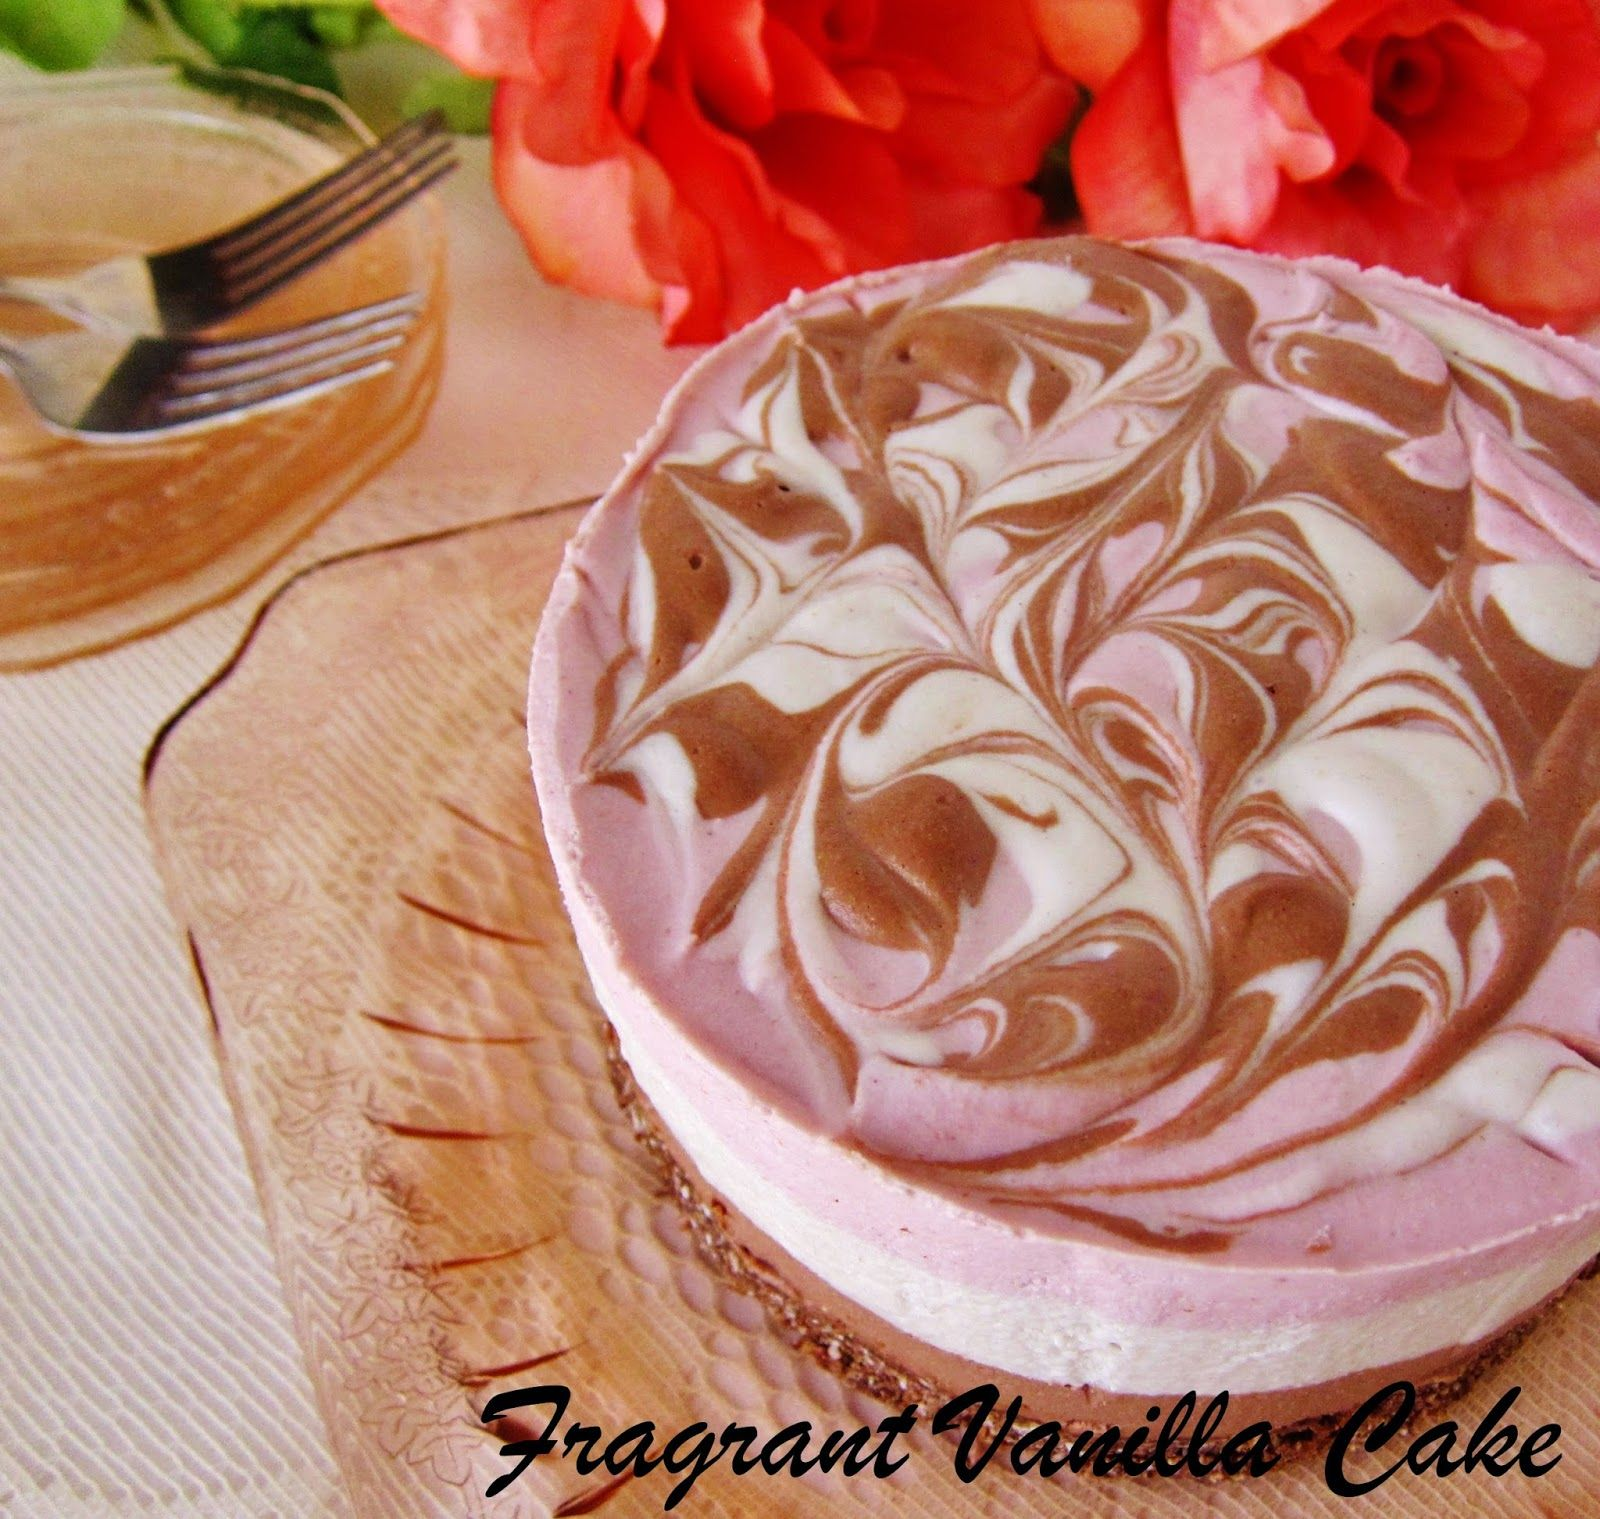 Fragrant Vanilla Cake: Raw Neapolitan Cheesecake, Blogaversary and a Giveaway!